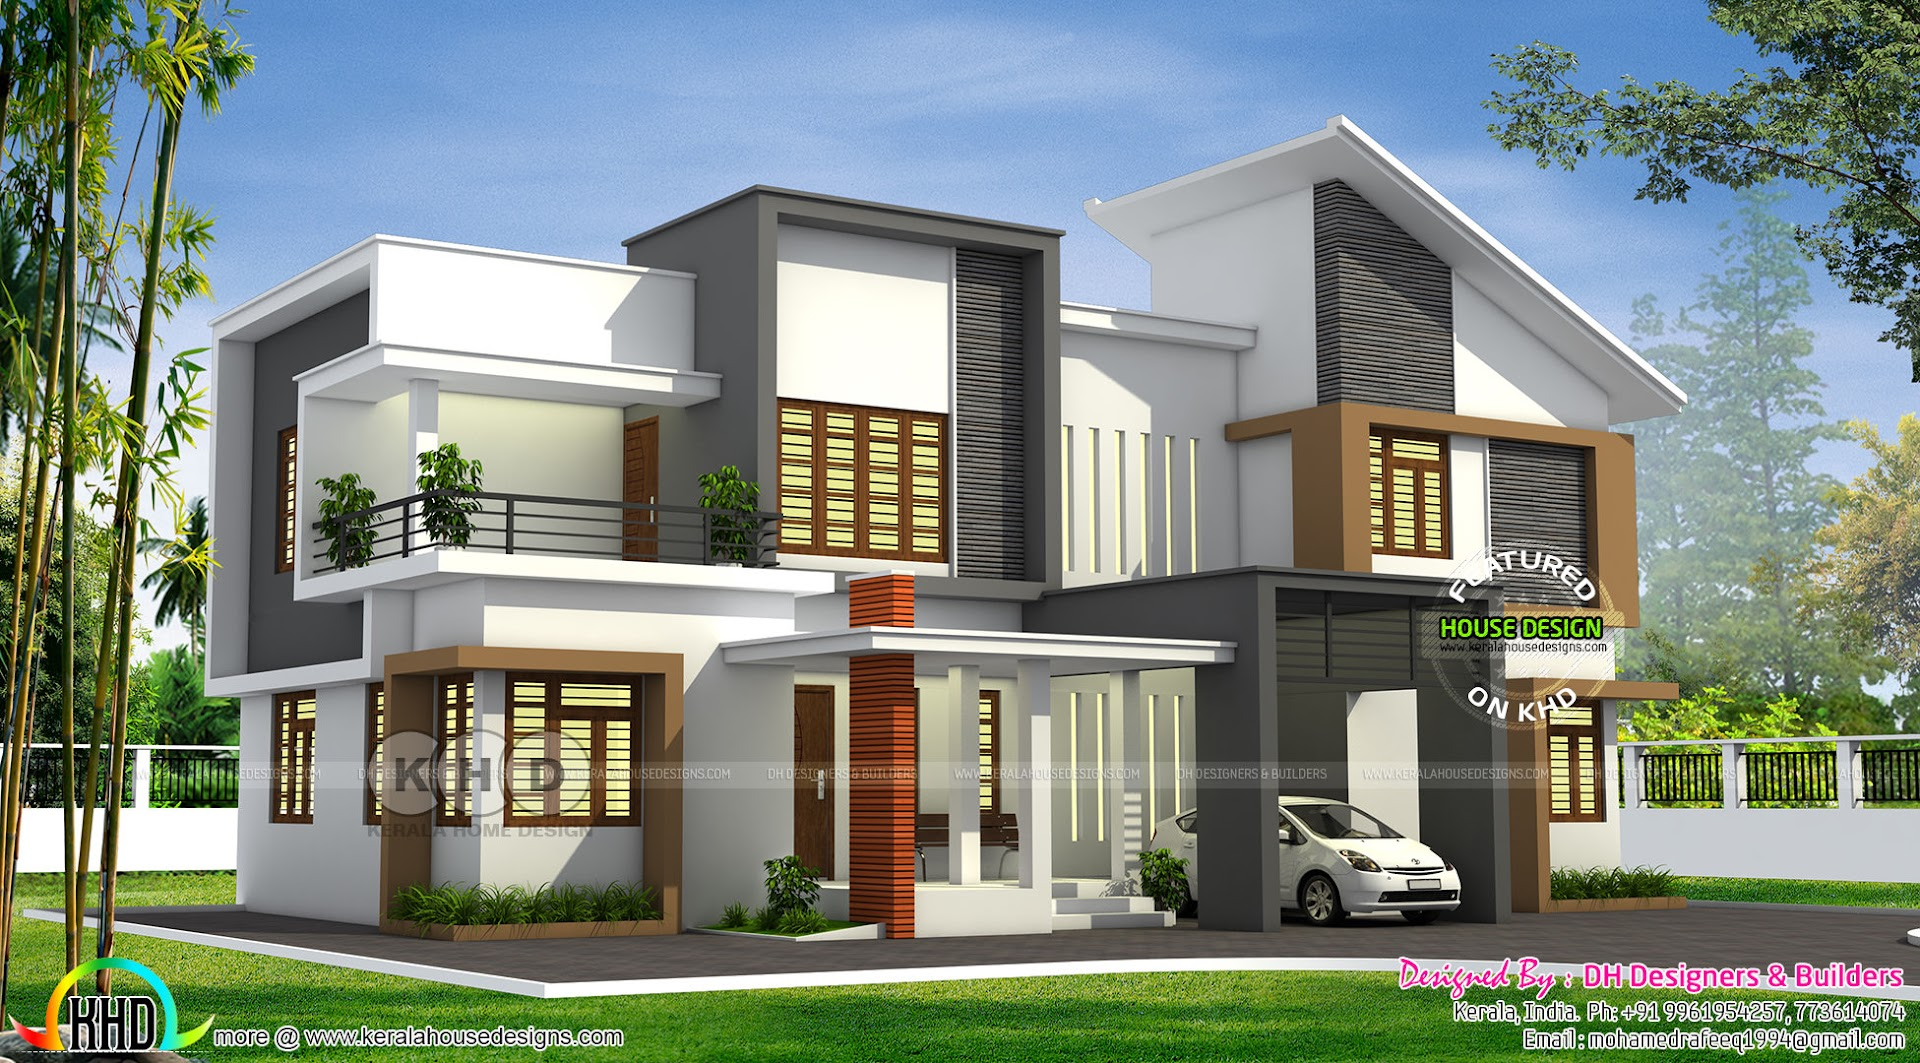 Contemporary Home By Dh Designers And Builders Kerala